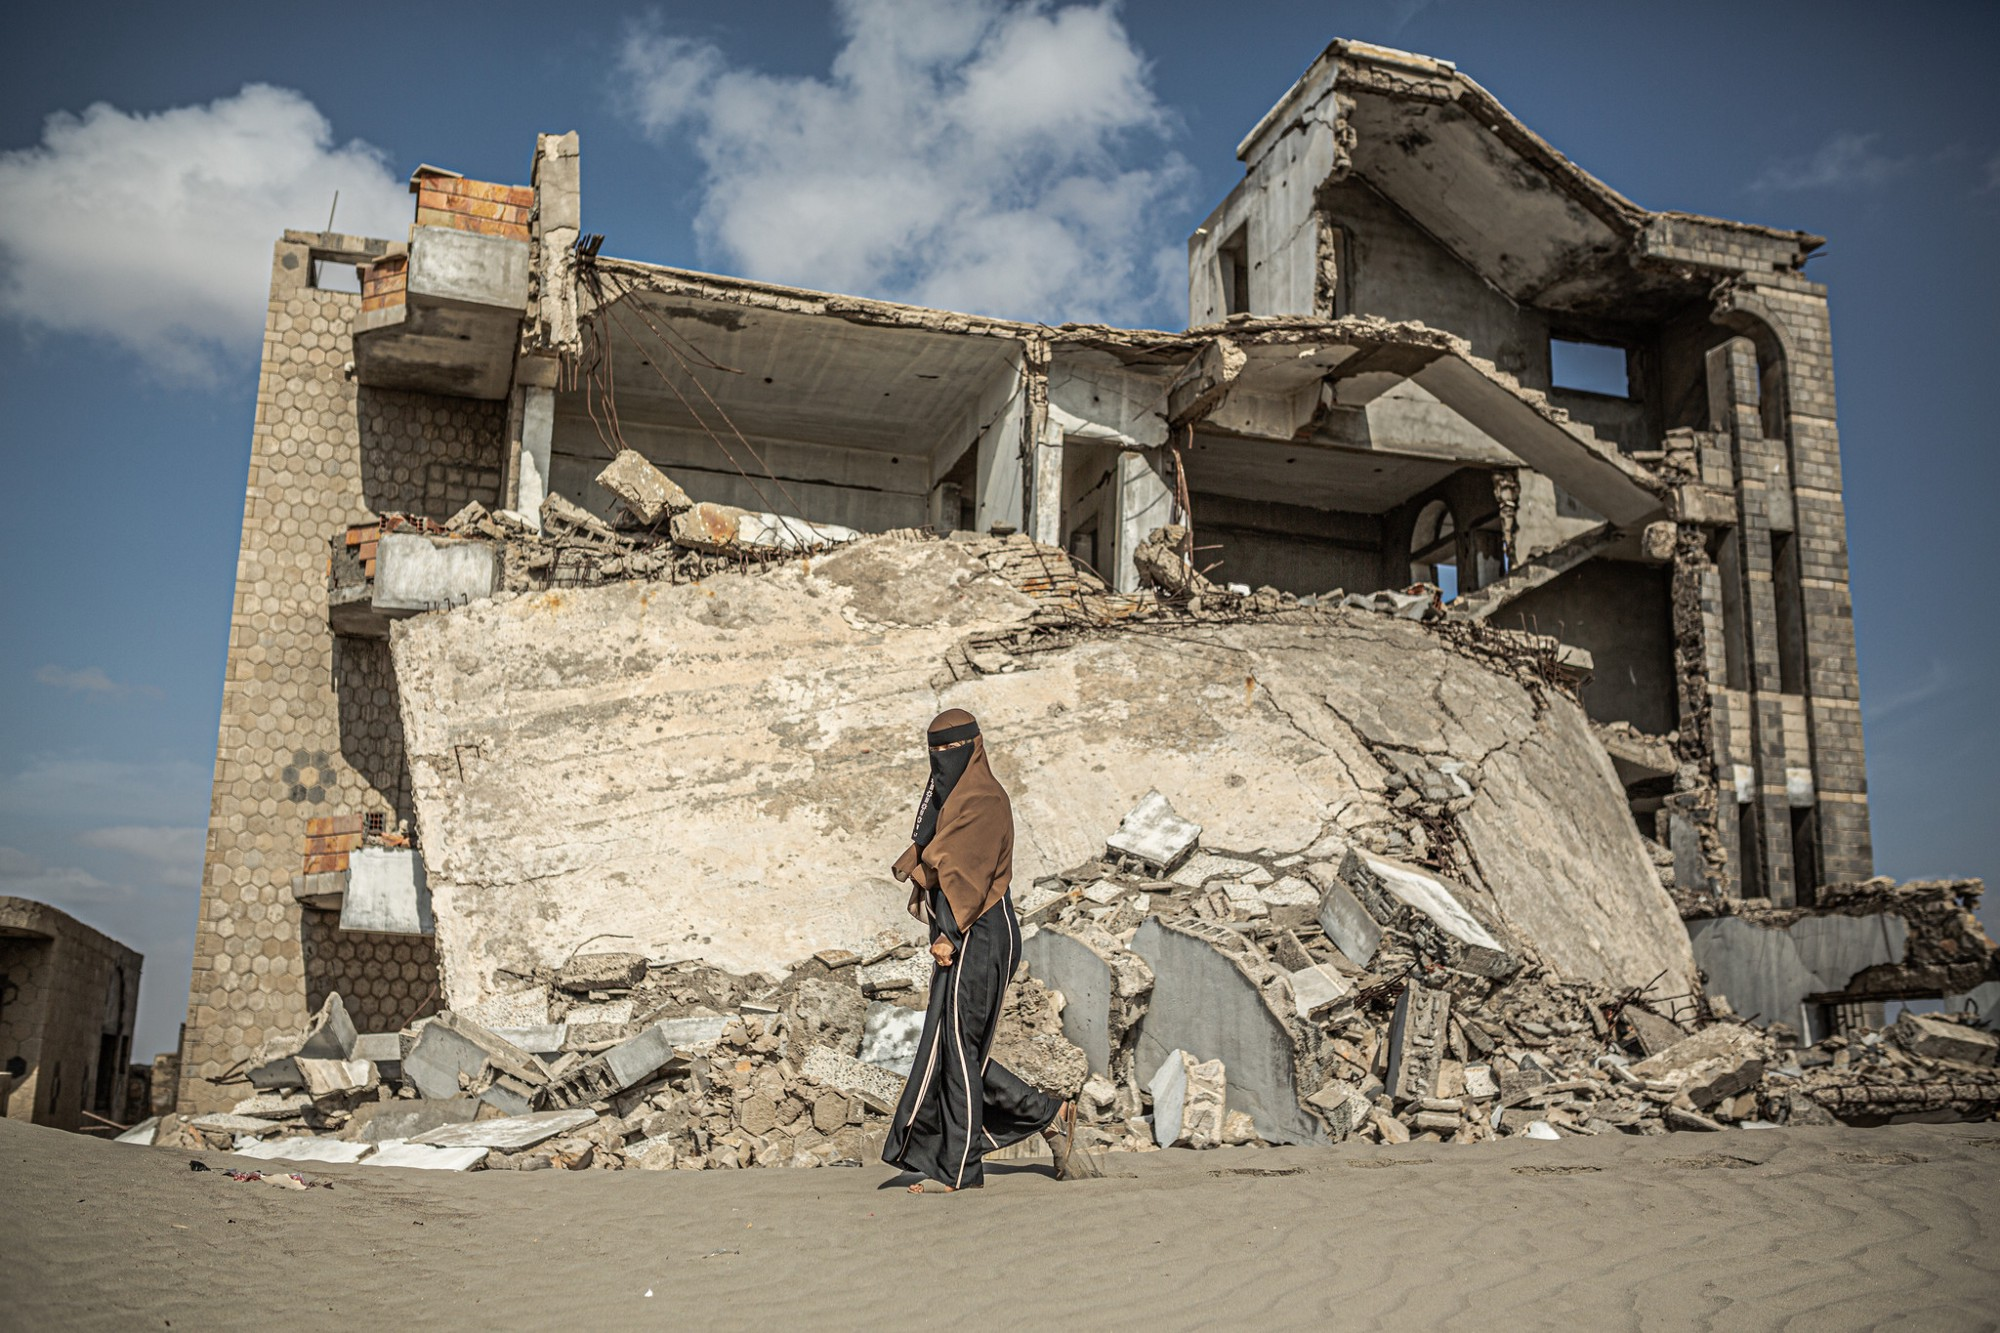 The neighborhood of Arish is full of houses destroyed by air strikes in southwest Aden, Yemen. Photo: Pablo Tosco/Oxfam